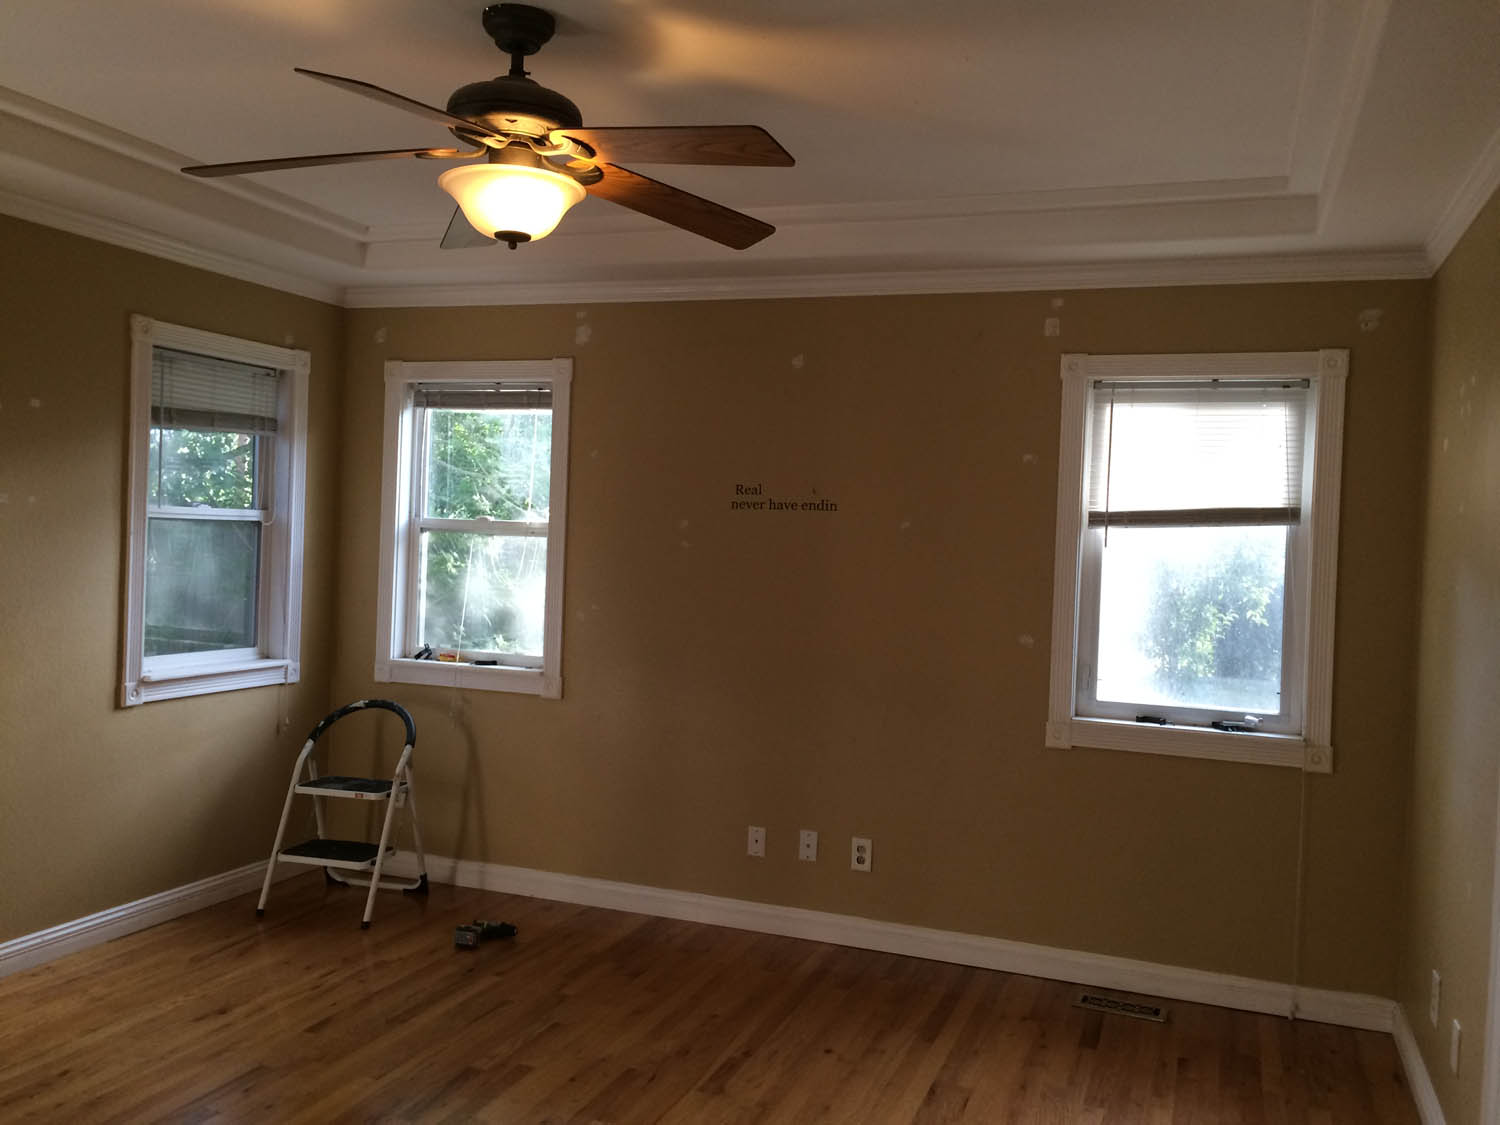 Master bedroom walls before painting.